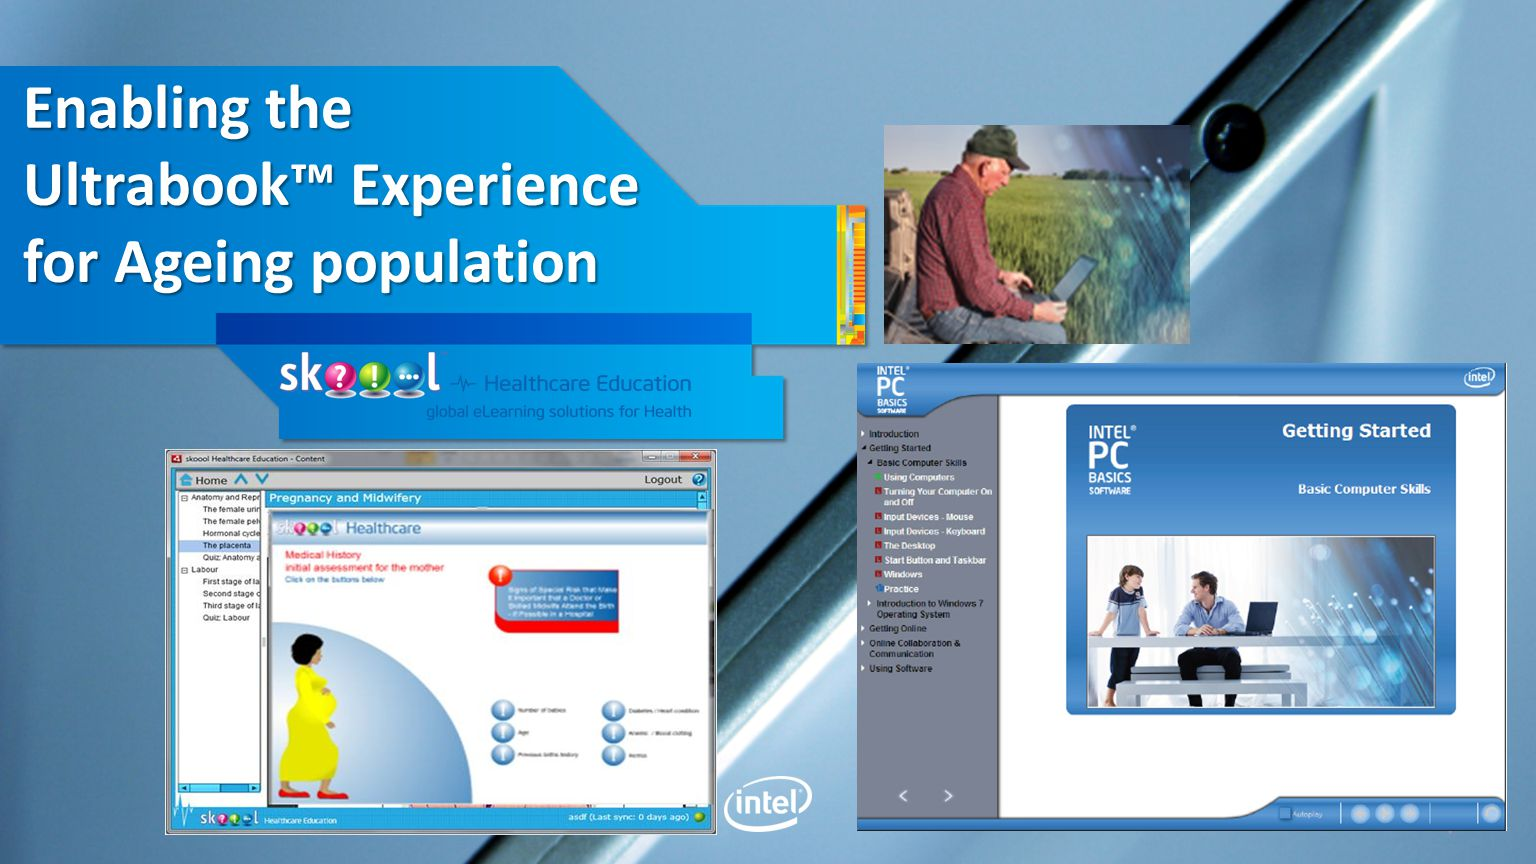 Enabling the Ultrabook Experience for Ageing population